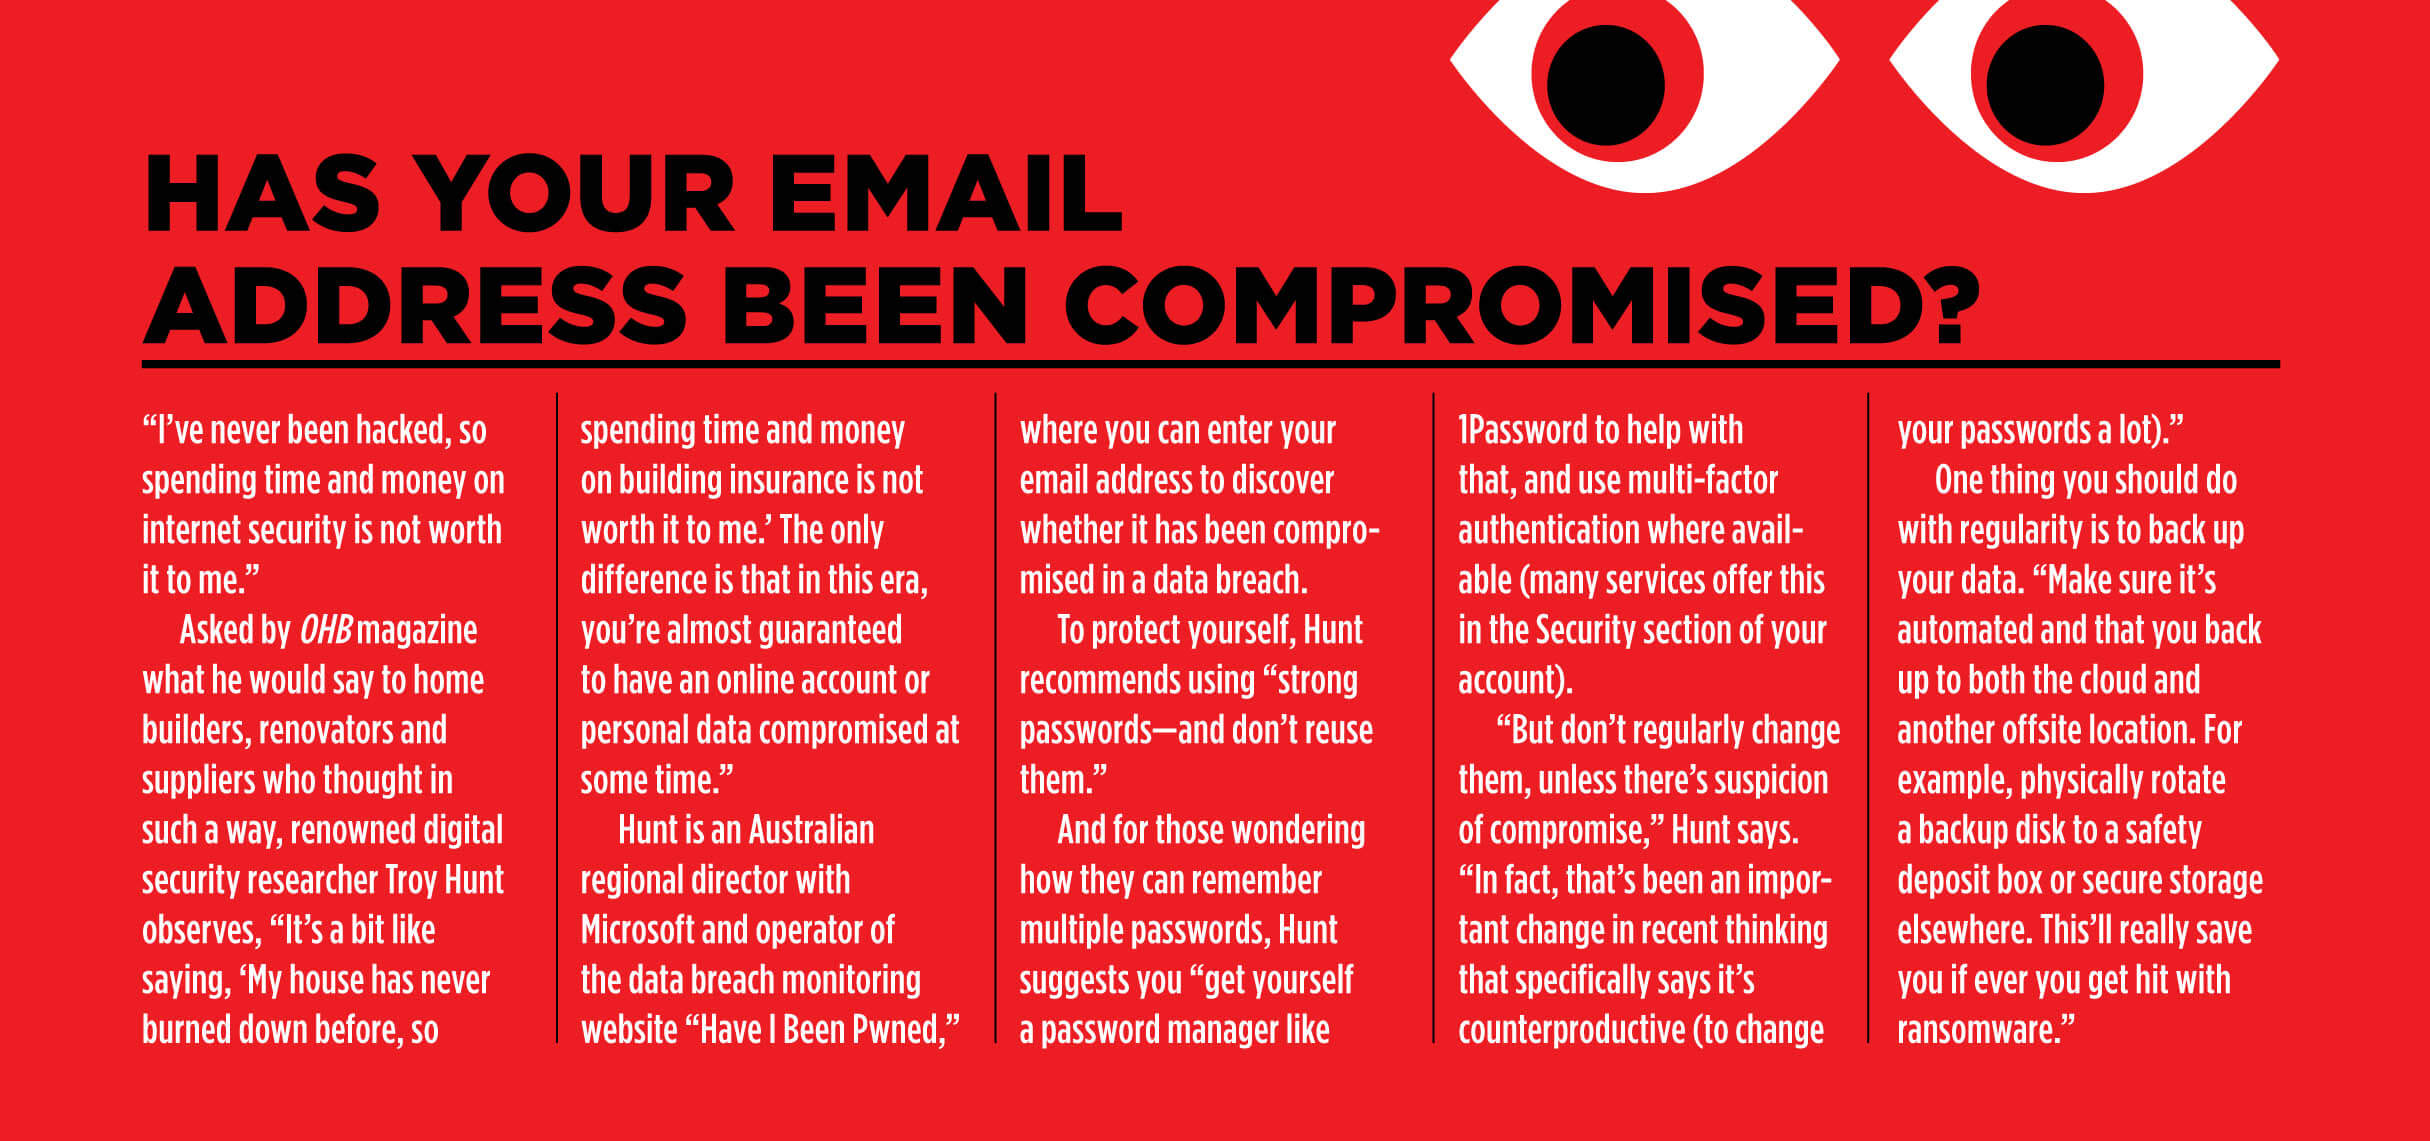 Compromised email addresses lead to computer security problems and network hacking